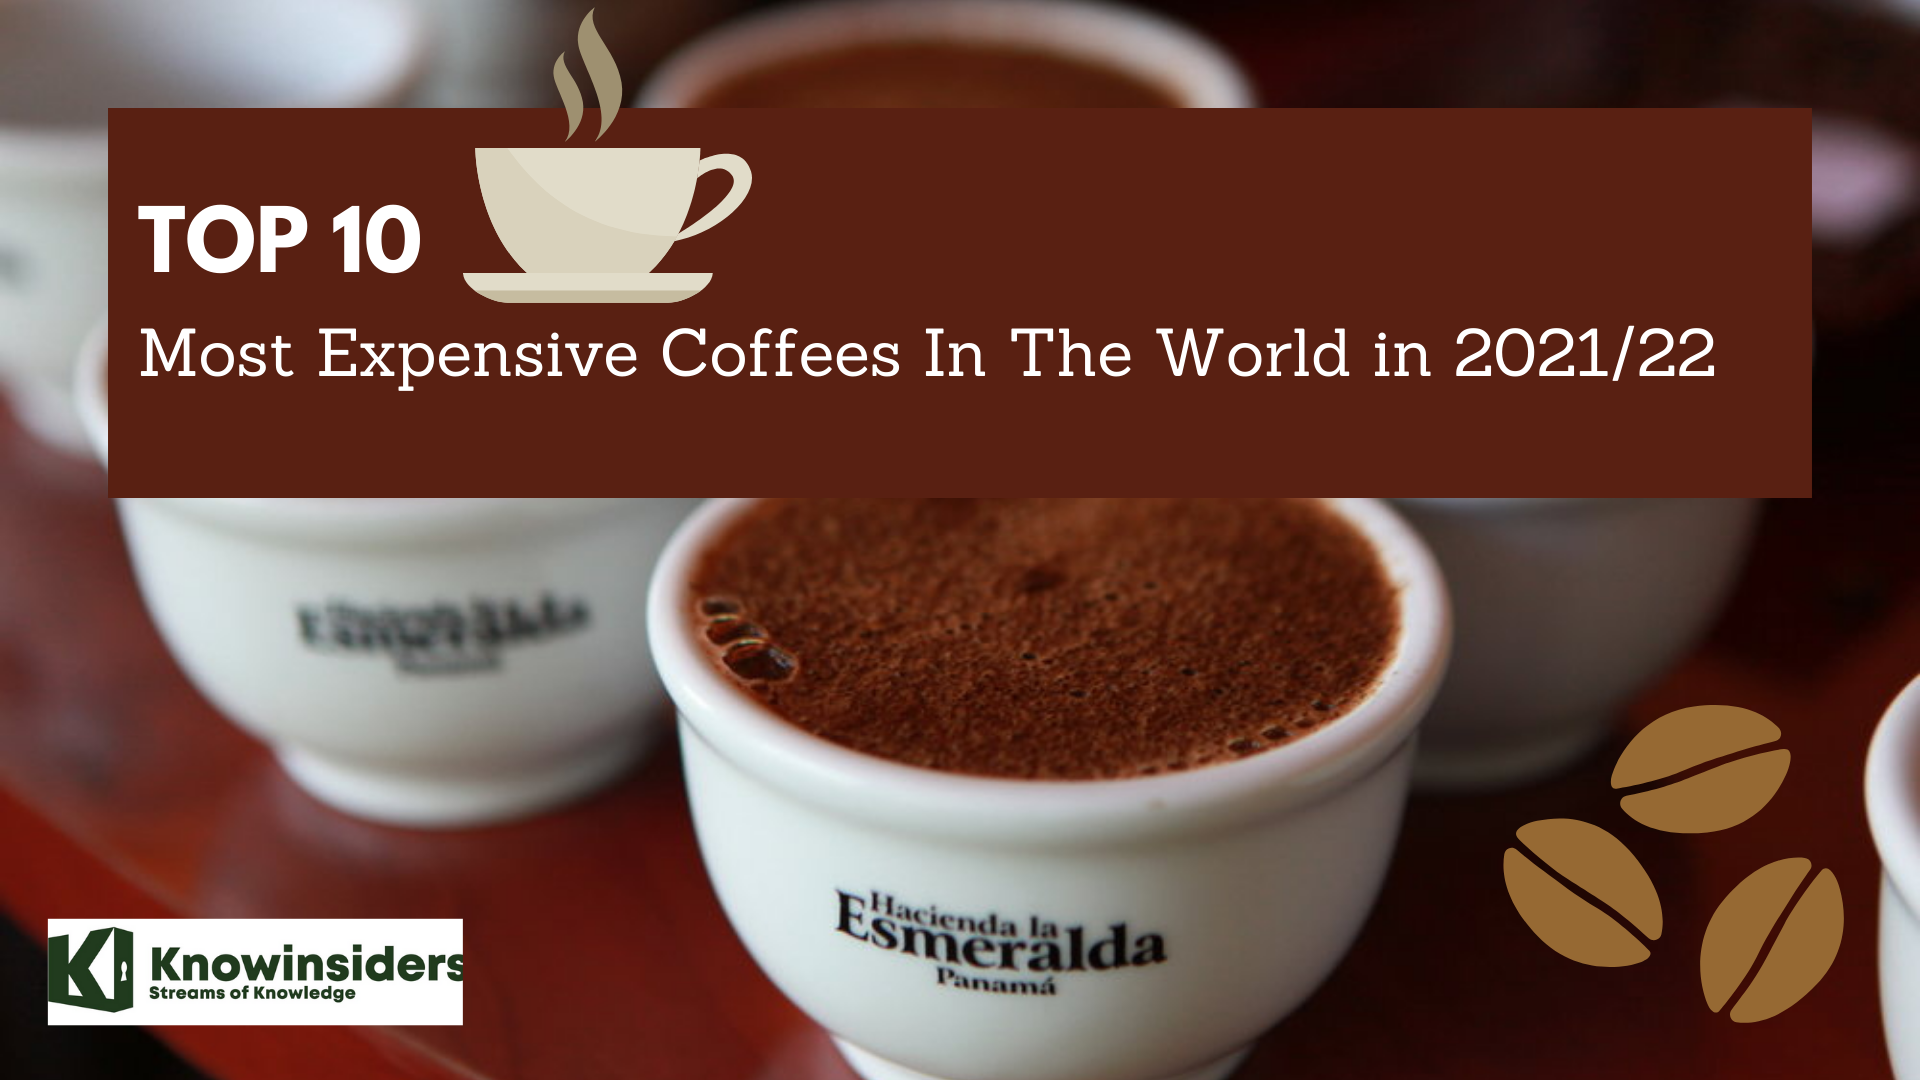 Top 10 Most Expensive Coffee In The World for 2021/2022